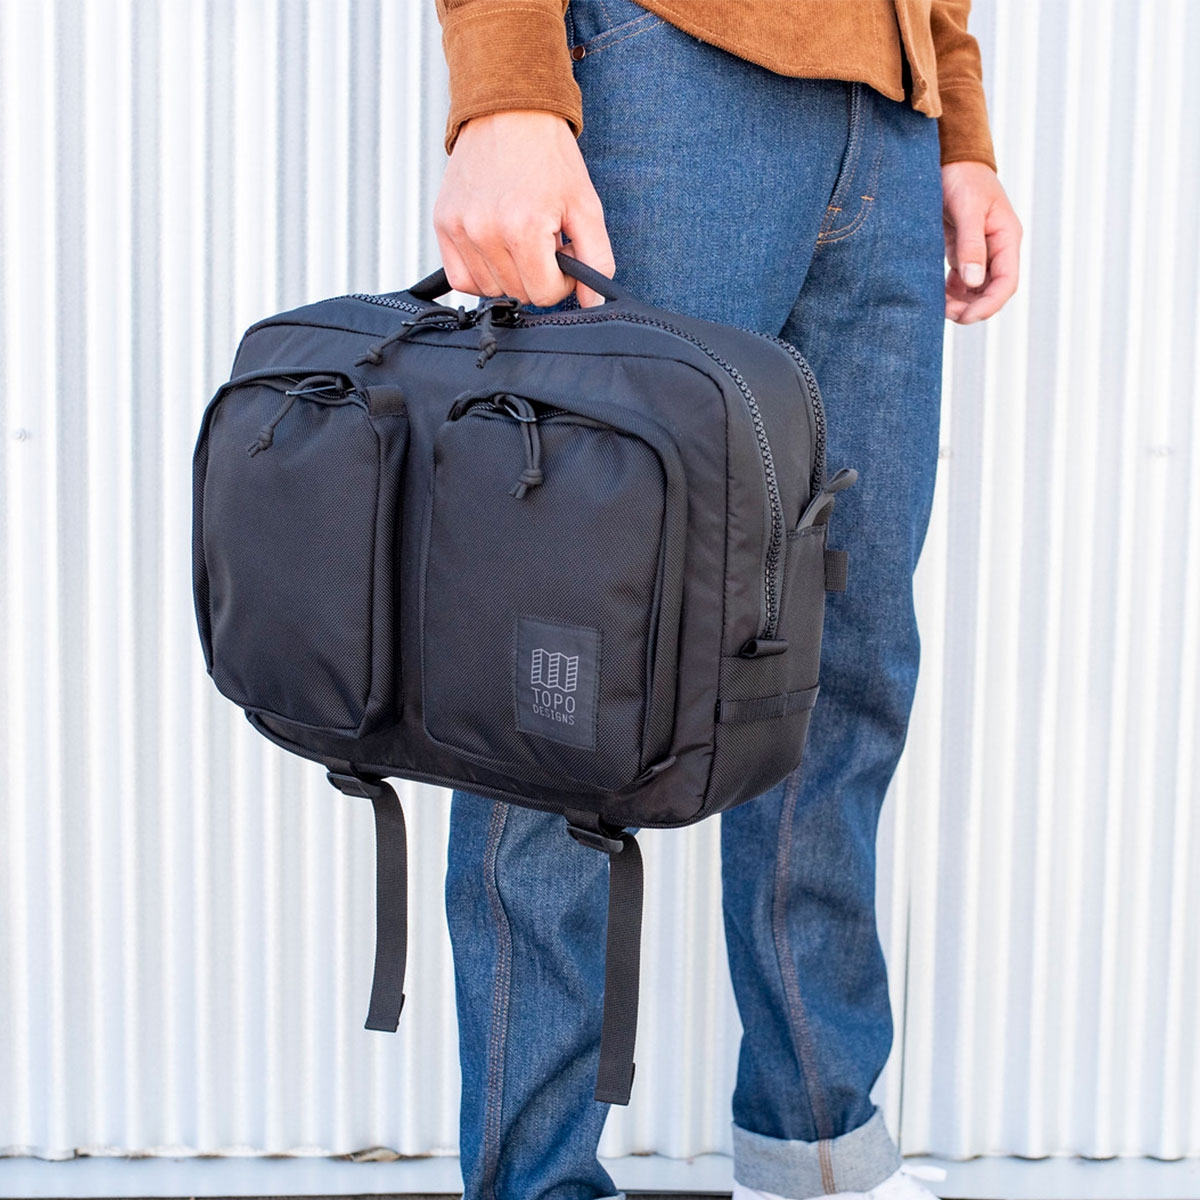 Topo Designs Global Briefcase Ballistic Black, the perfect bag for everyday carry